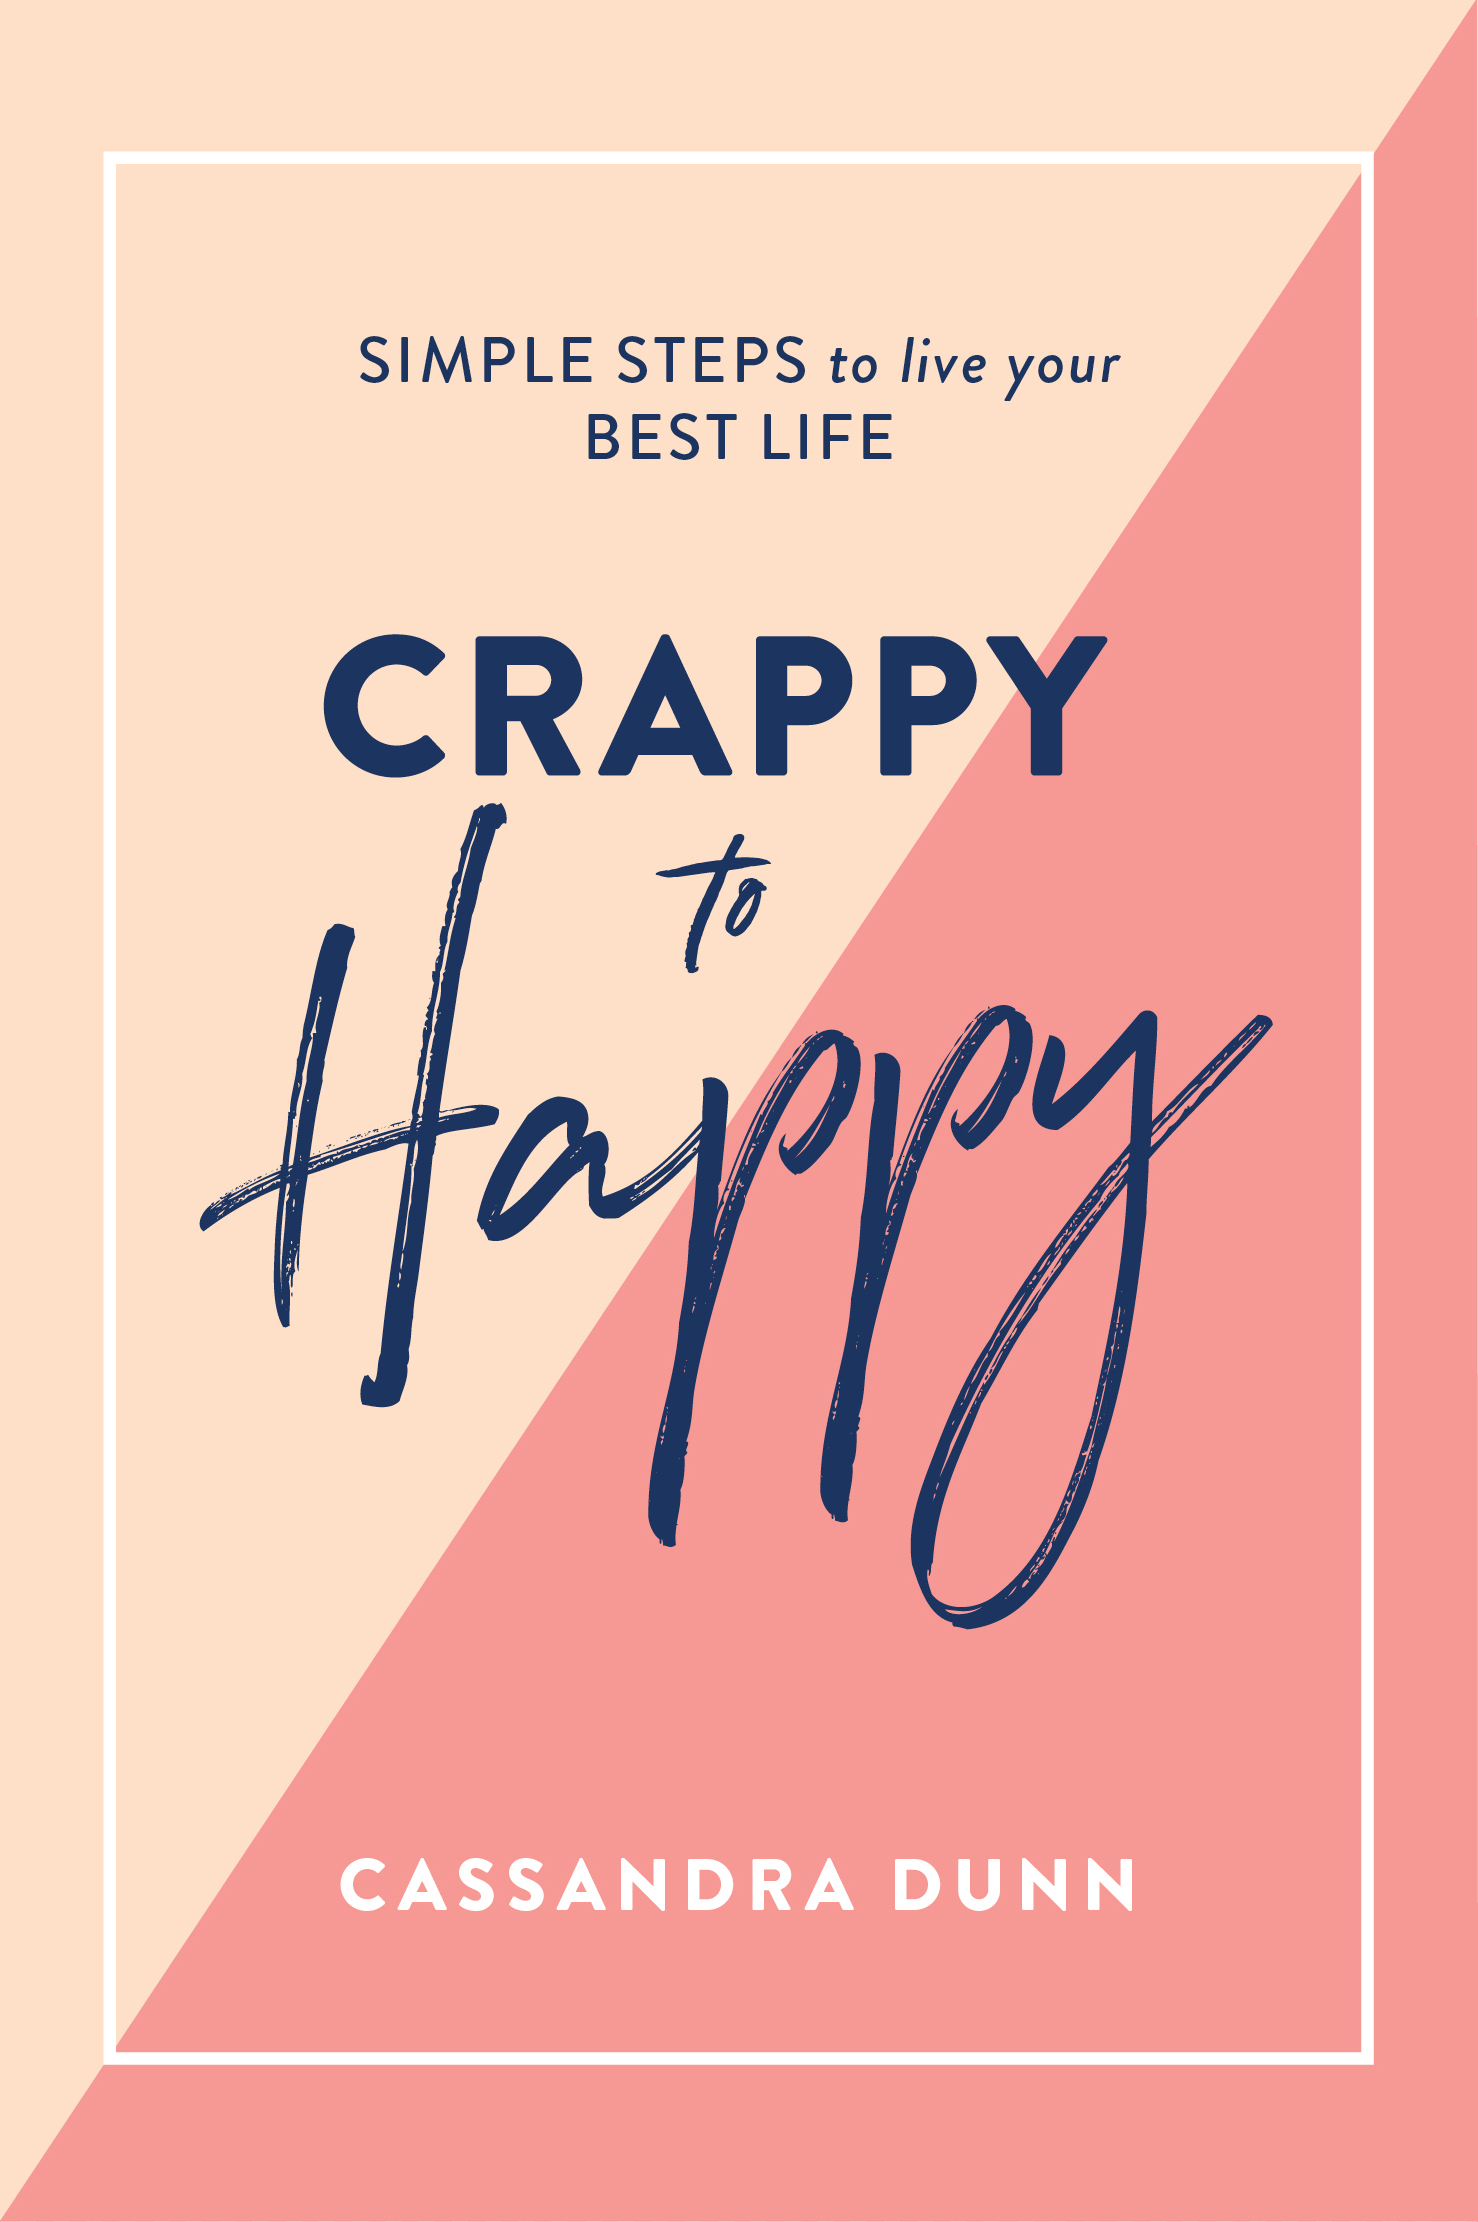 Crappy to Happy: Simple Steps to Live Your Best Life